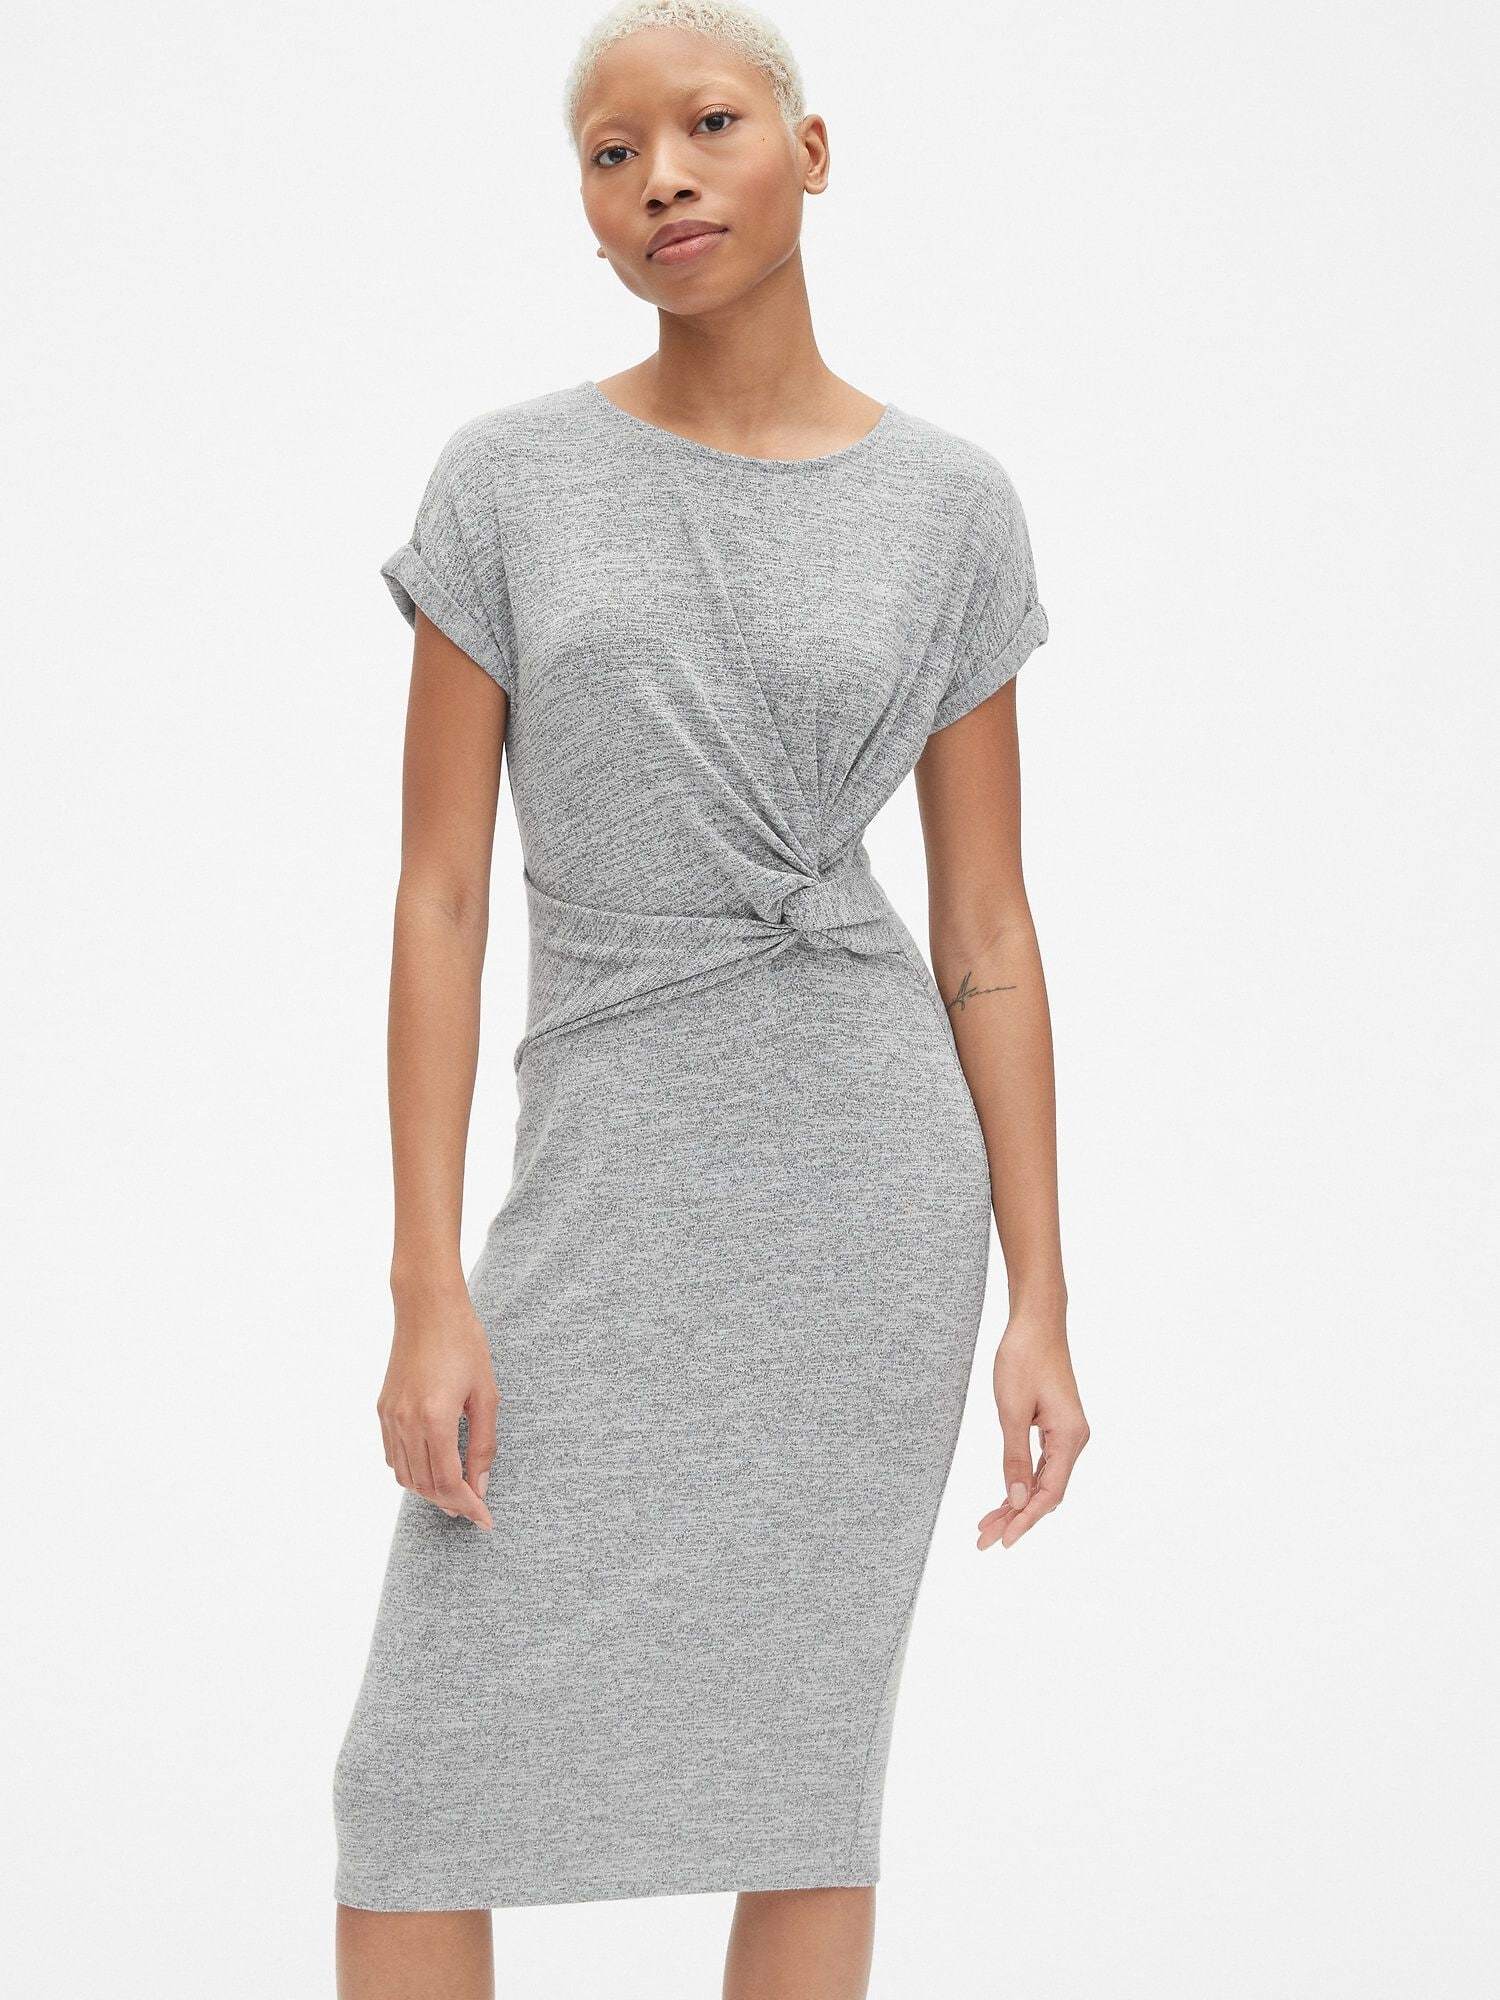 7929dfa163fa Softspun Short Sleeve Twist-Knot Midi Dress | Gap® UK